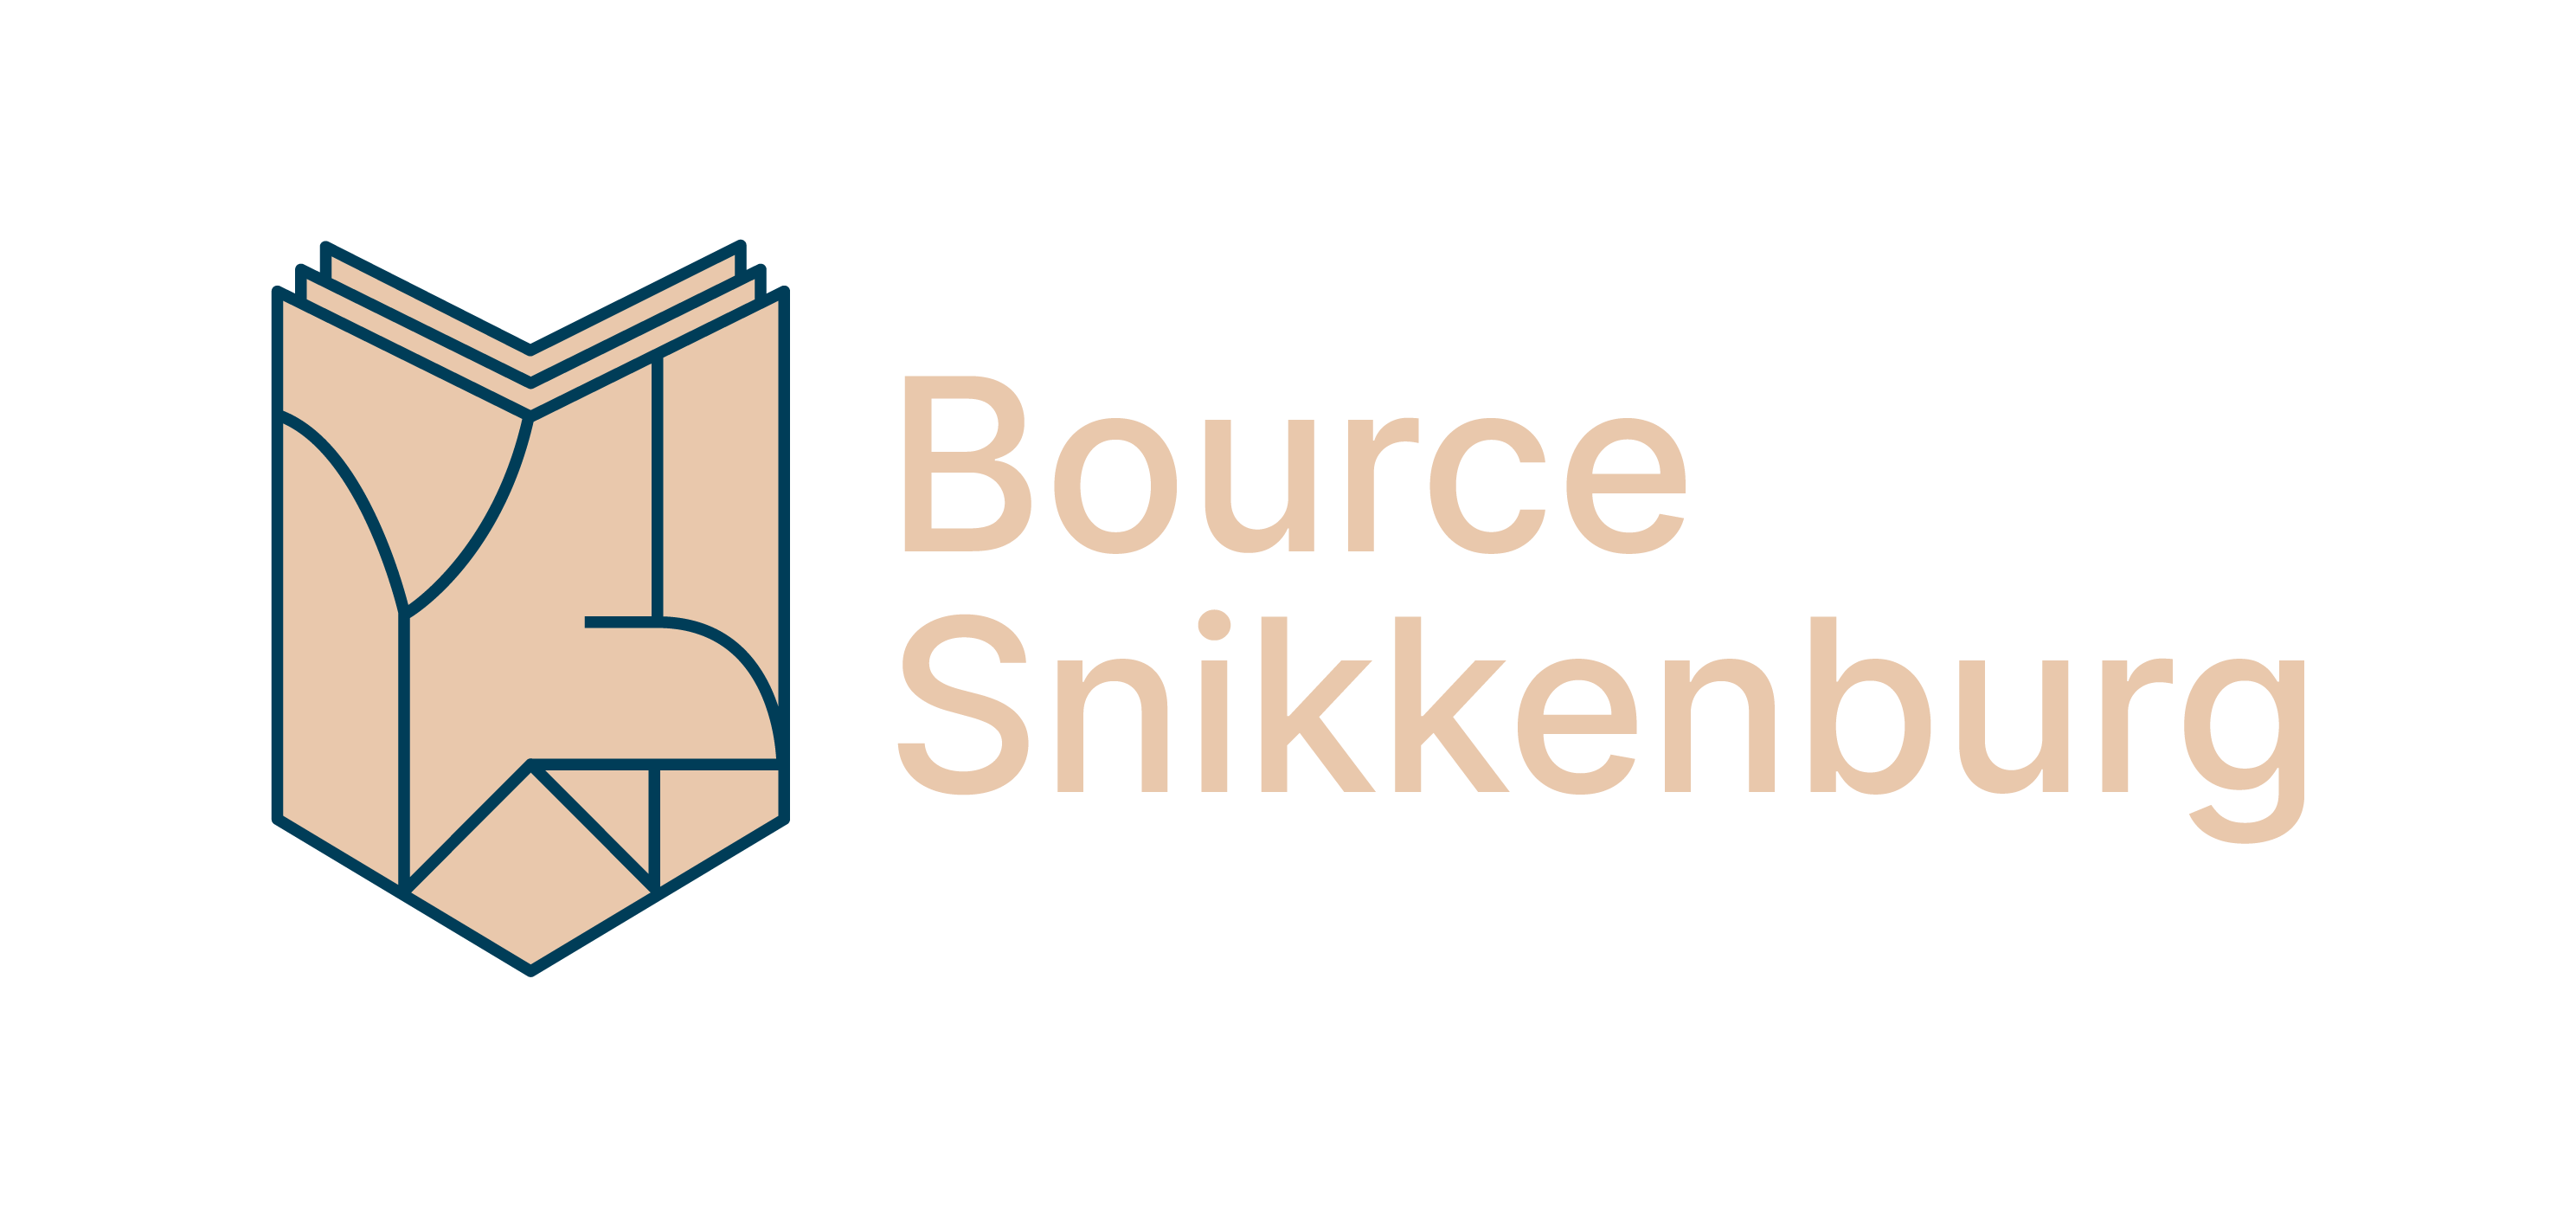 Bource-Snikkenburg